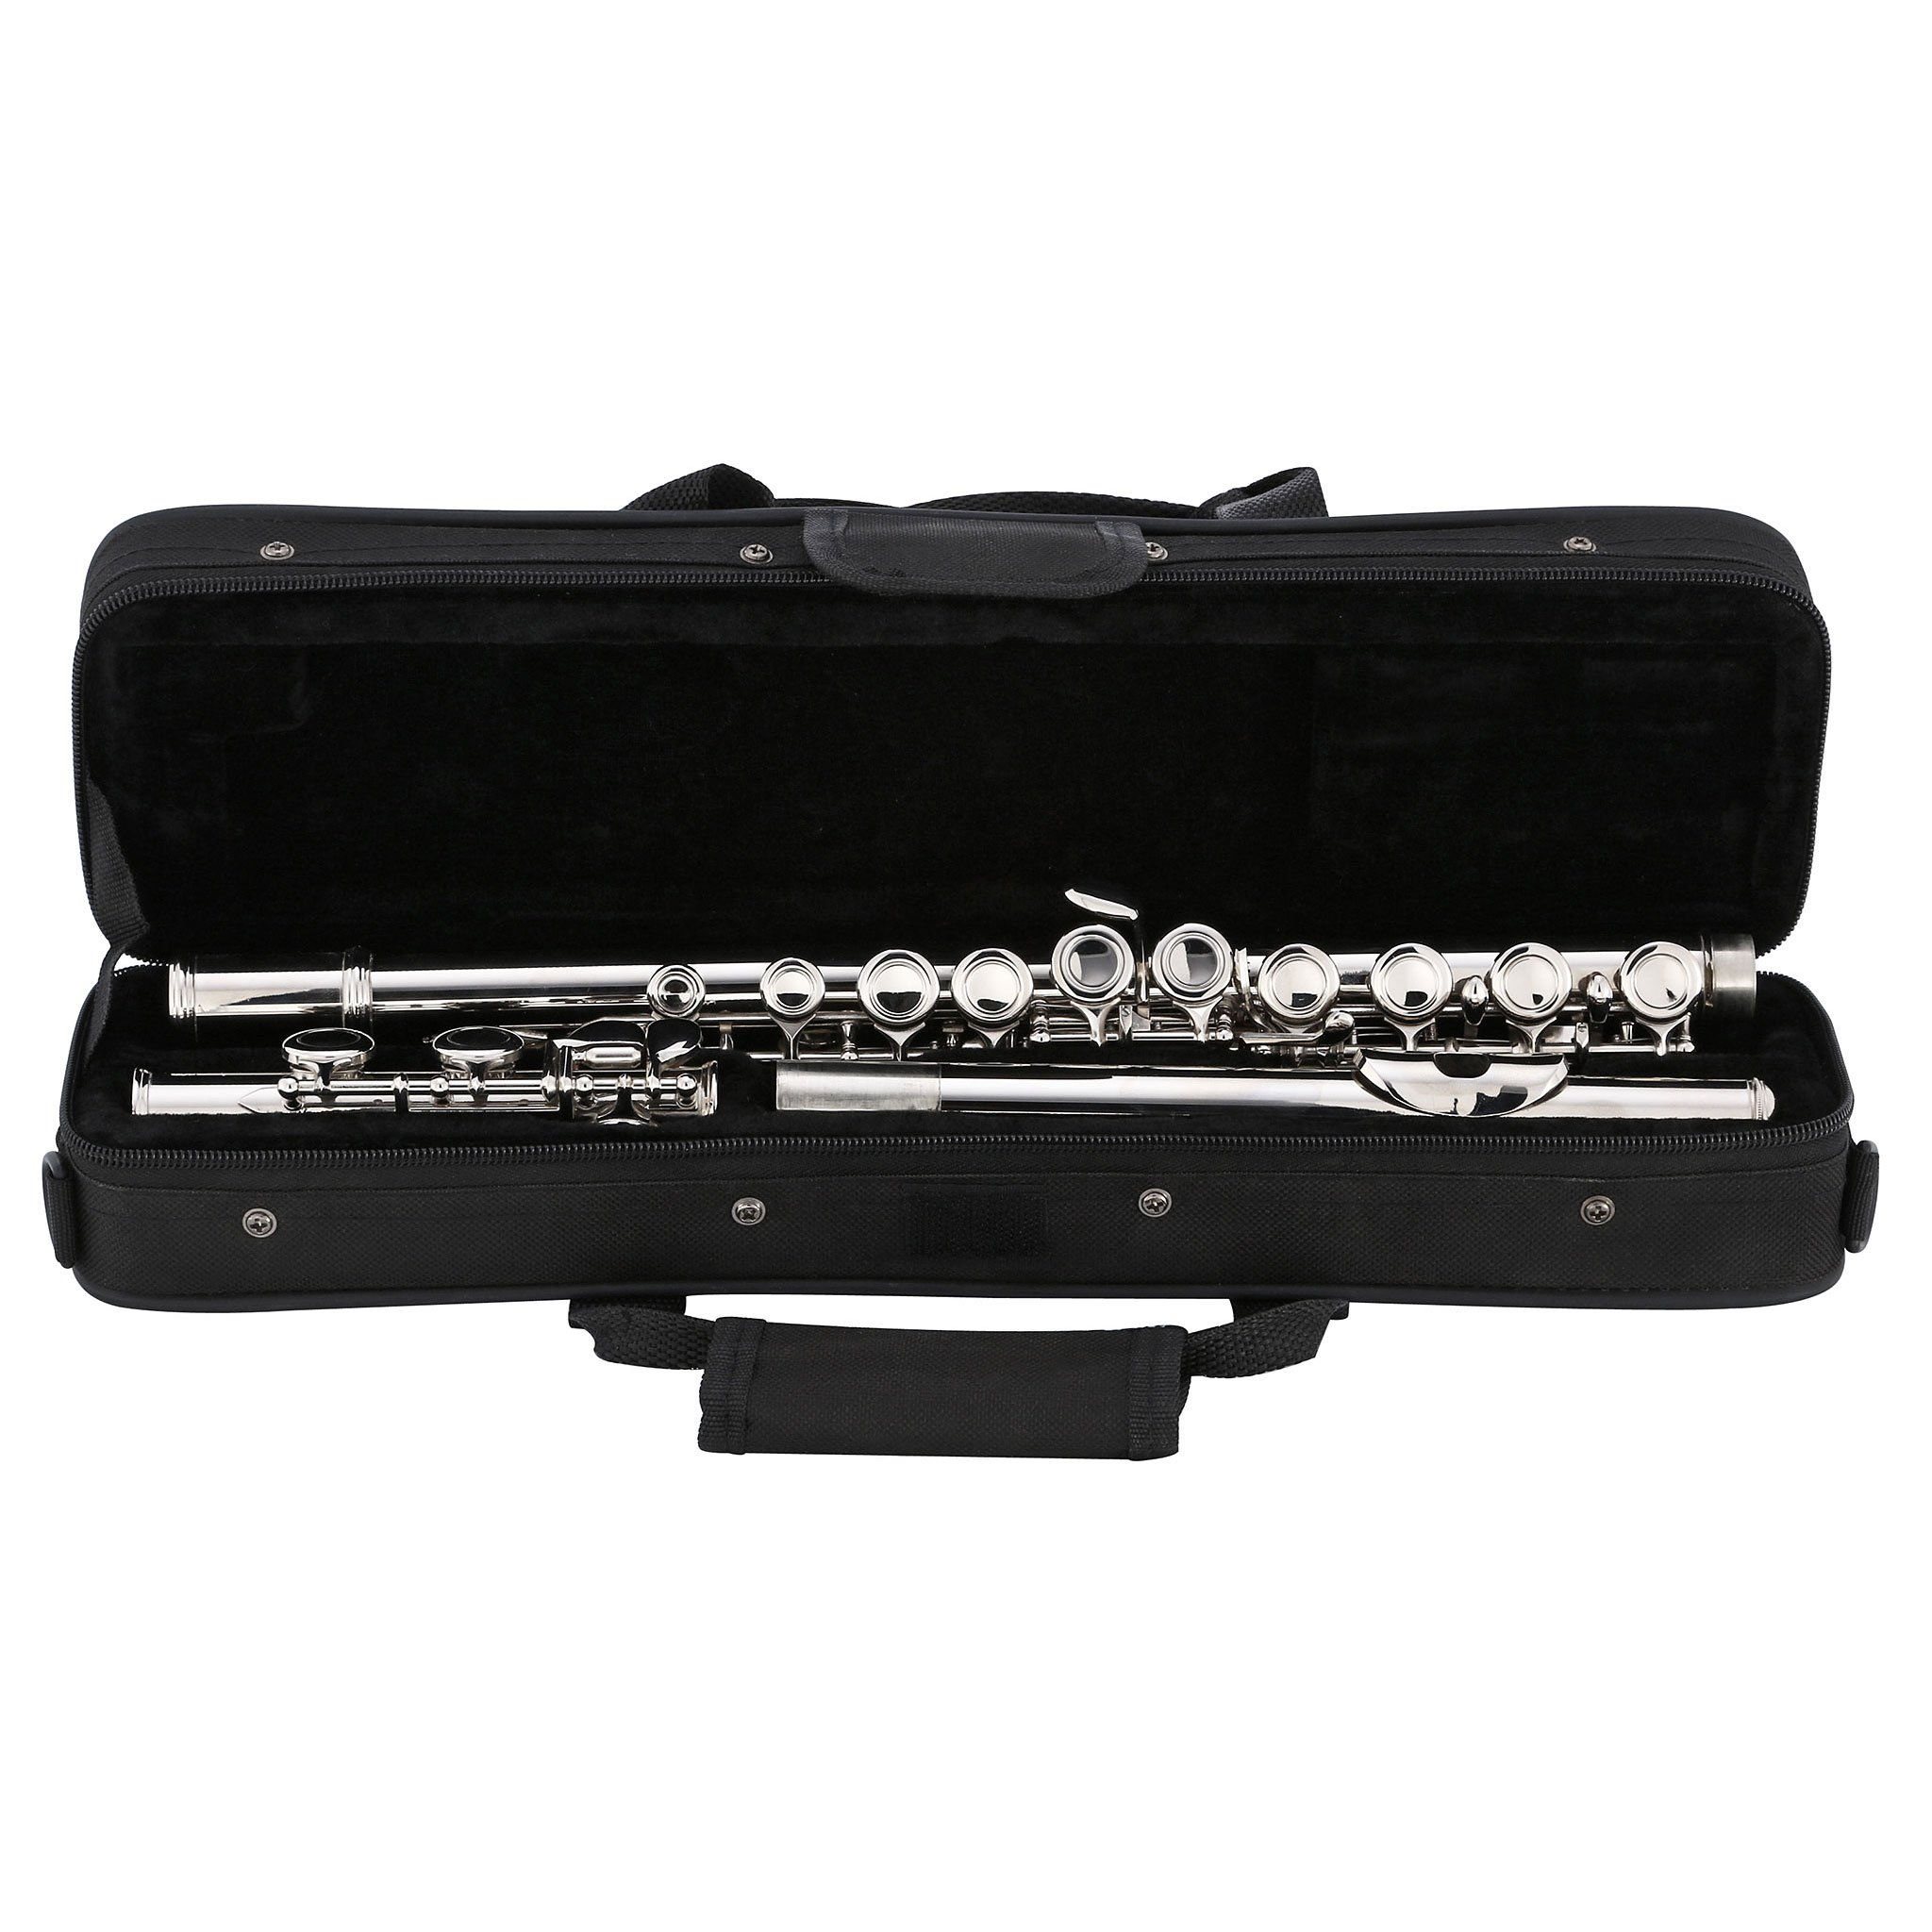 Kaizer Flute C Key 1000 Series Closed Hole Nickel Silver New 2018 Model Student Flute FLT-1500NK by Kaizer (Image #7)